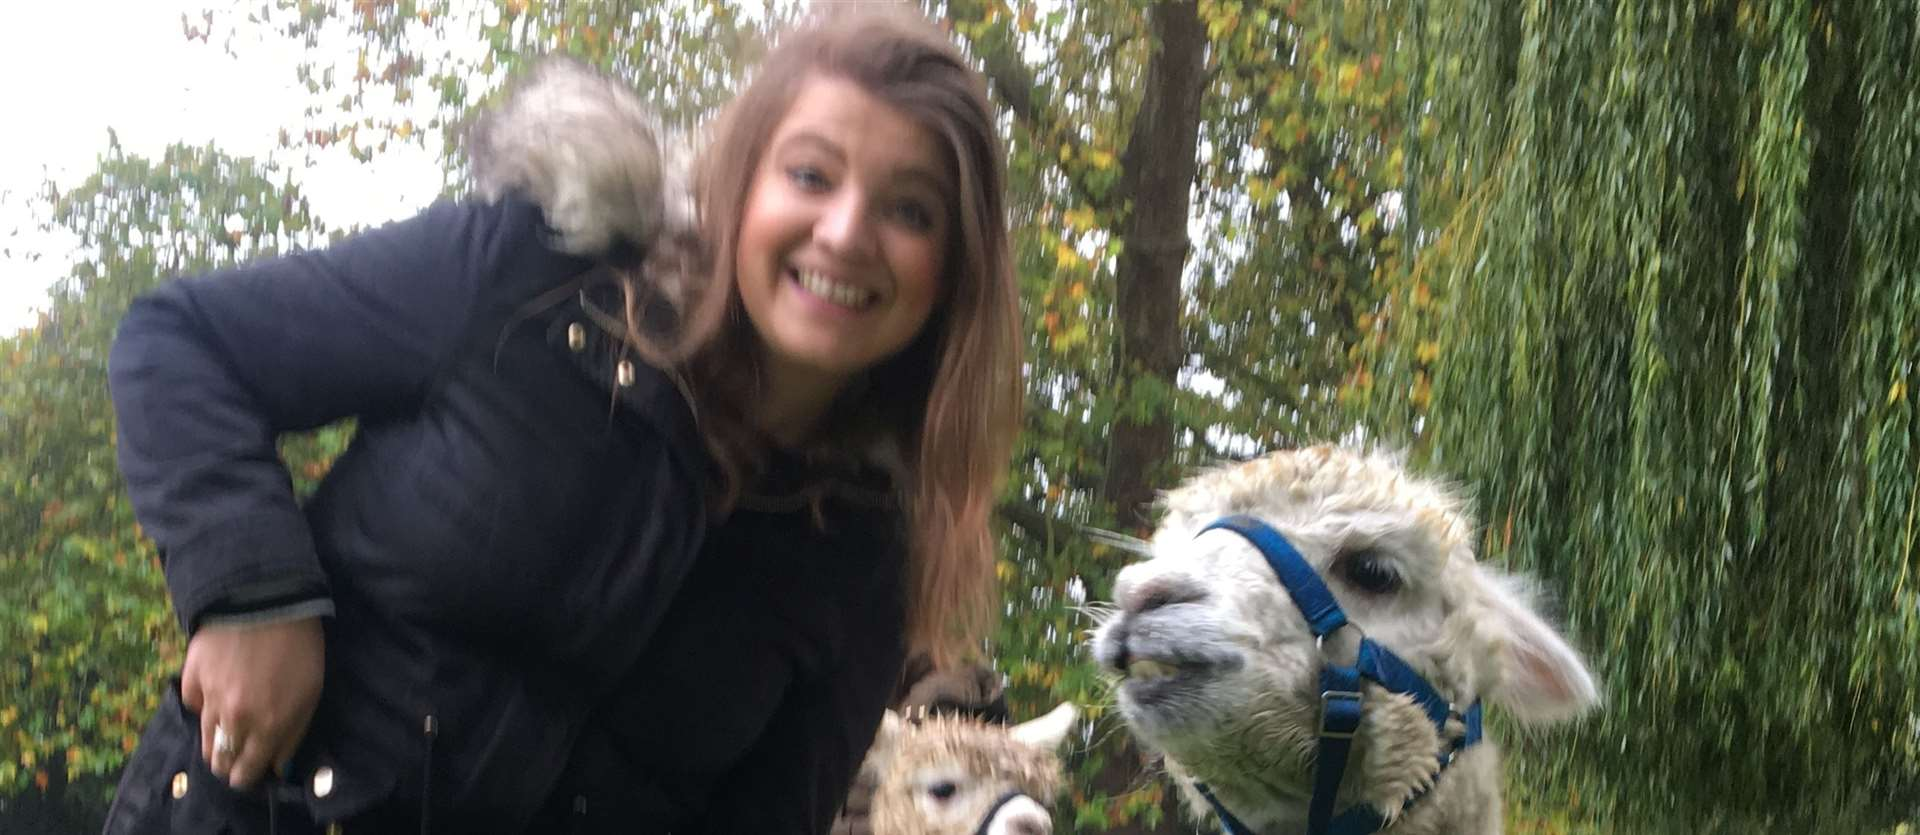 Pepe the alpaca makes a friend at the Kenward Trust in Yalding